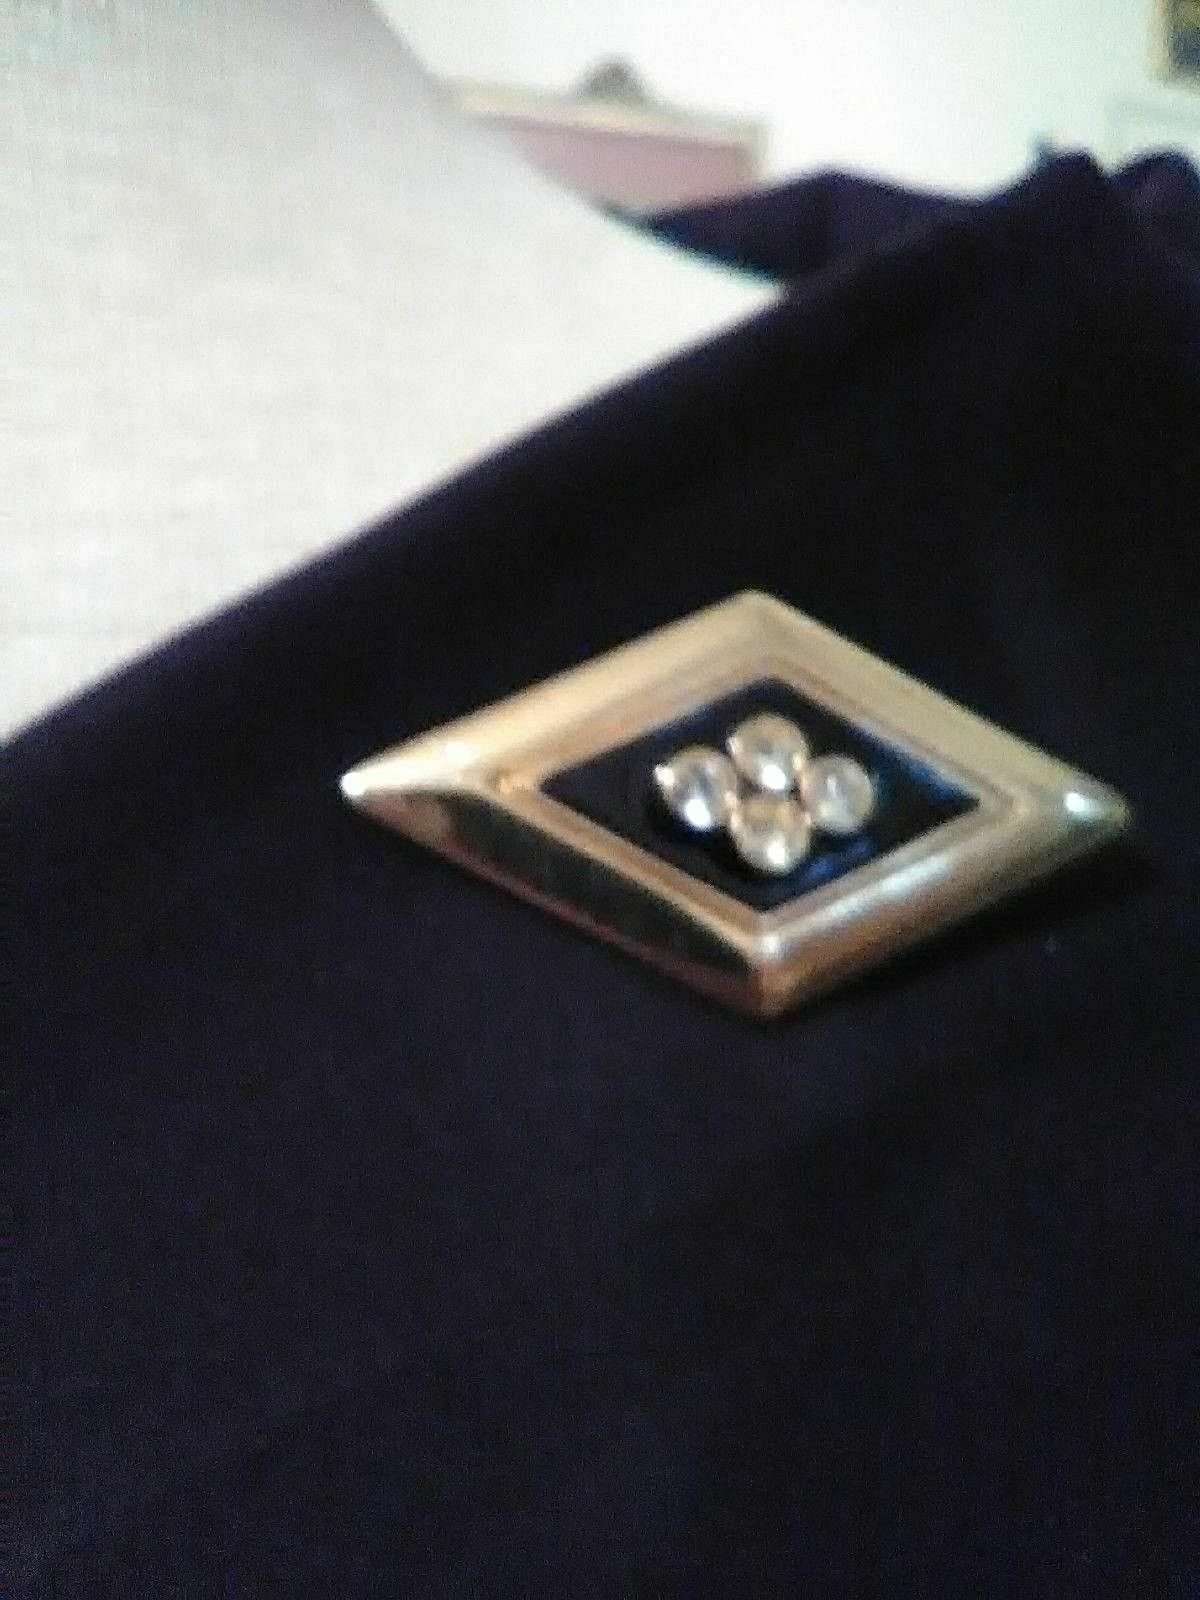 Primary image for VINTAGE GOLDEN PIN BROOCH GEOMETRIC BLACK ENAMEL JEWELLED DIAMOND SHAPE